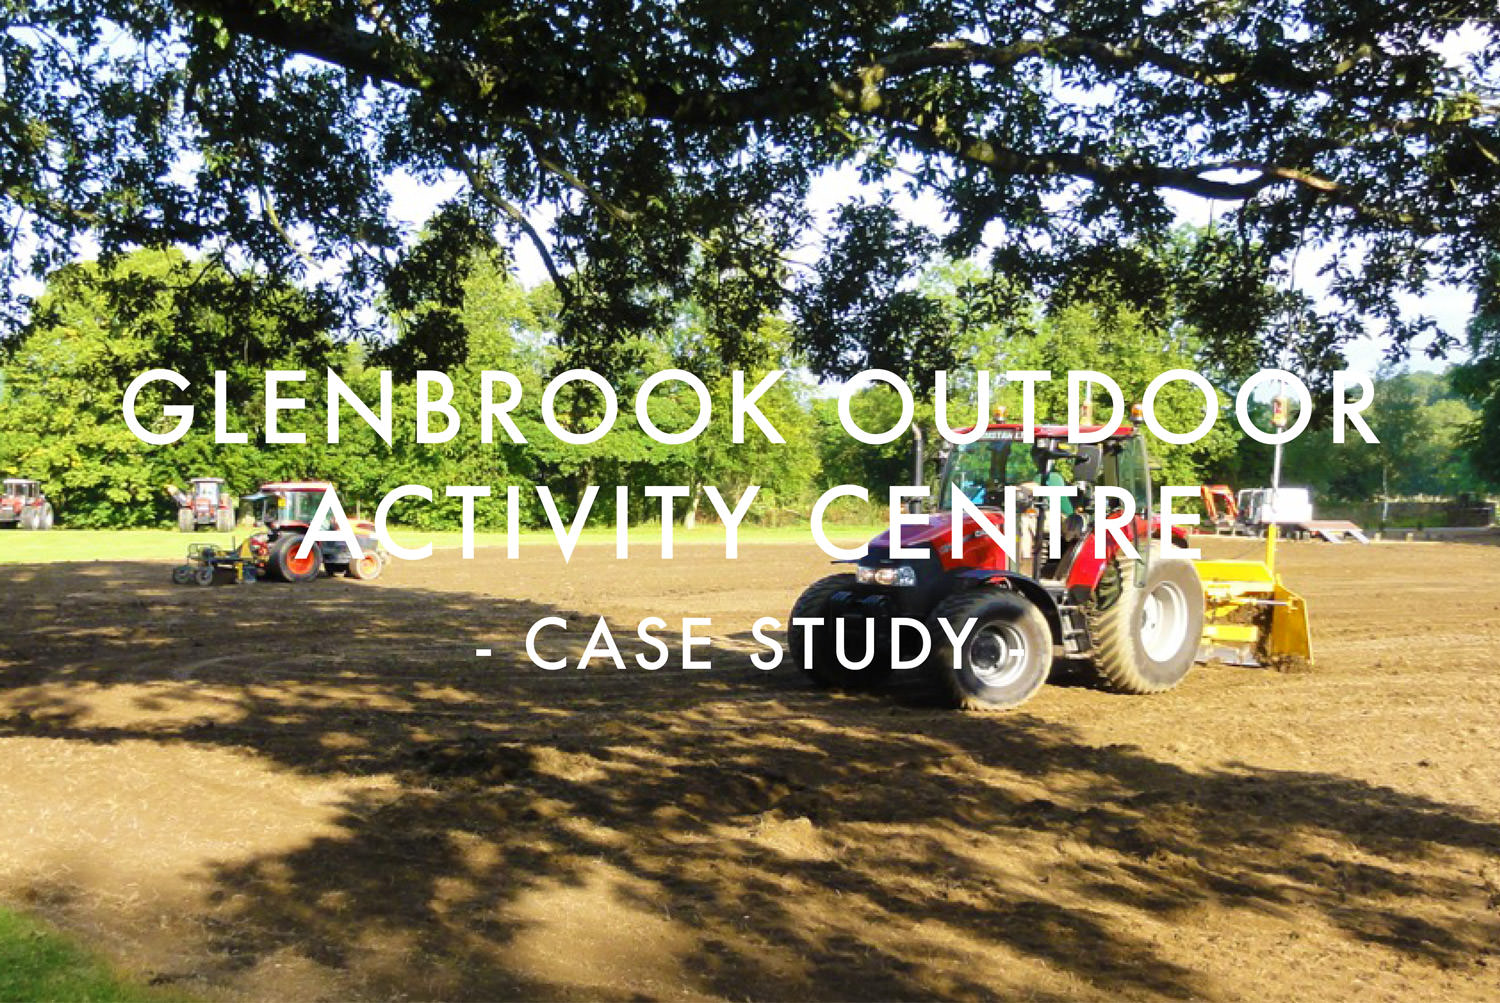 Glenbrook Outdoor Activity Centre - Case Study